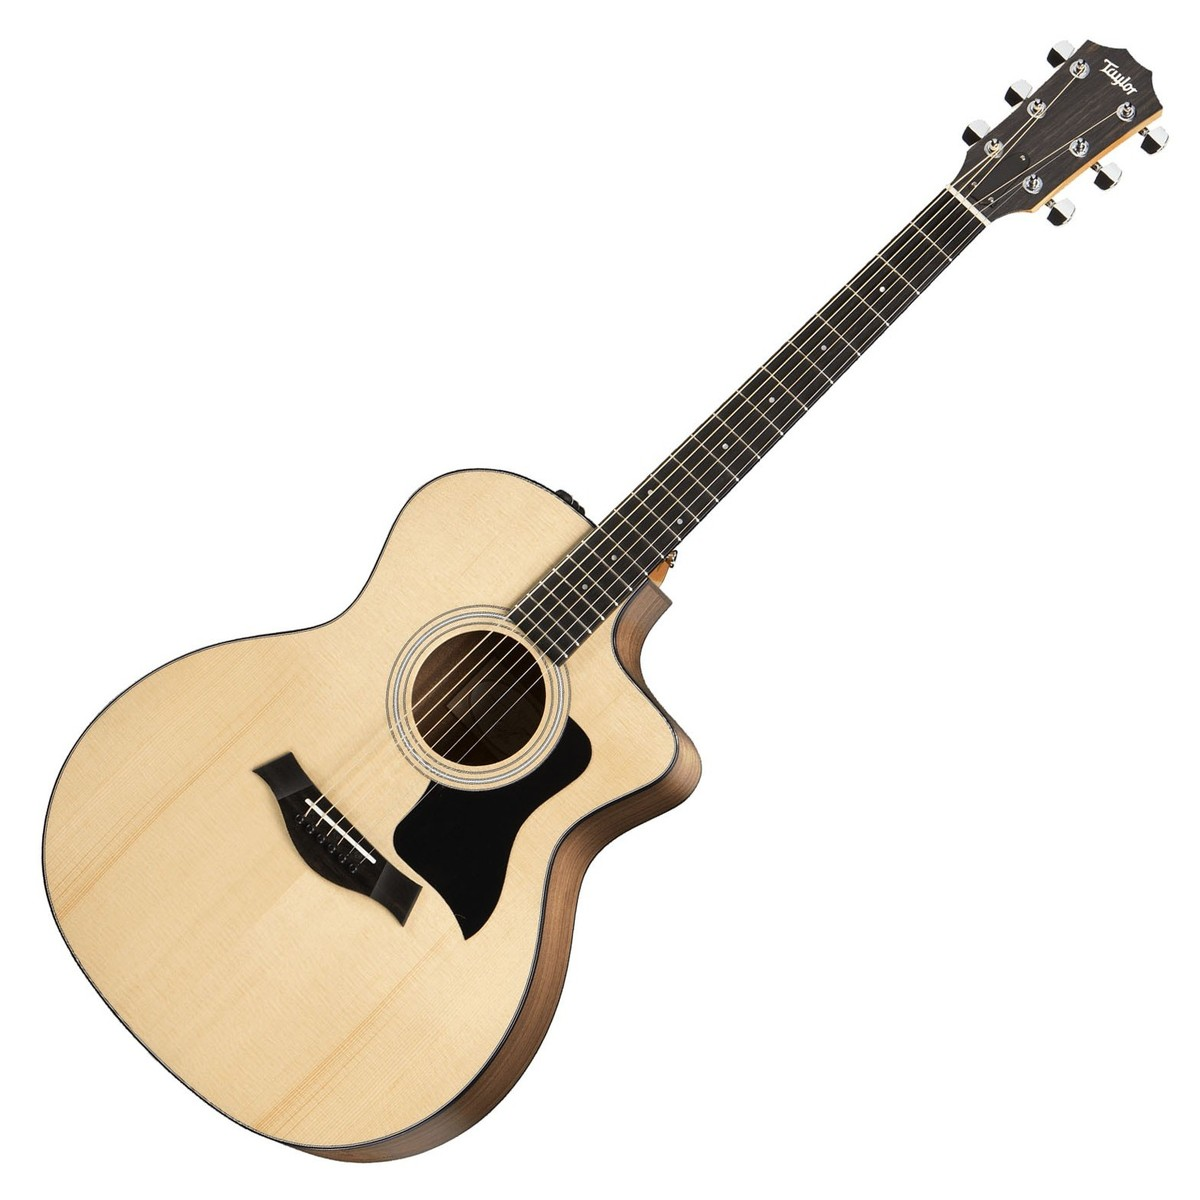 taylor 114ce grand auditorium electro acoustic guitar natural at gear4music. Black Bedroom Furniture Sets. Home Design Ideas